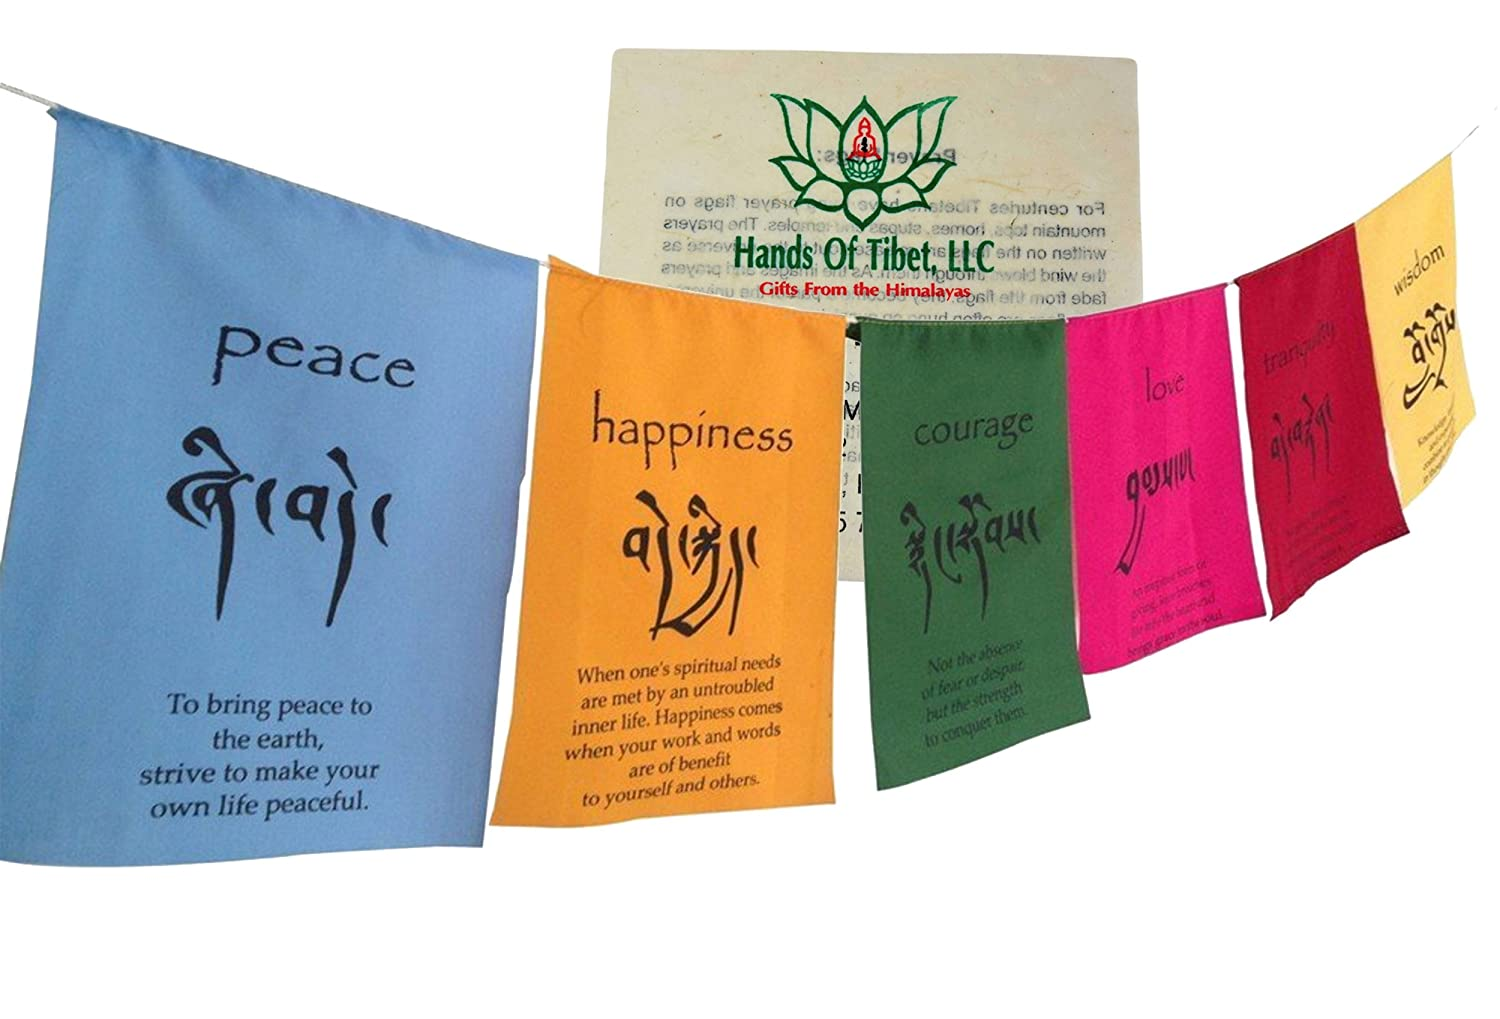 Hands Of Tibet Handmade Tibetan Affirmation prayer flags happiness courage love tranquility wisdom